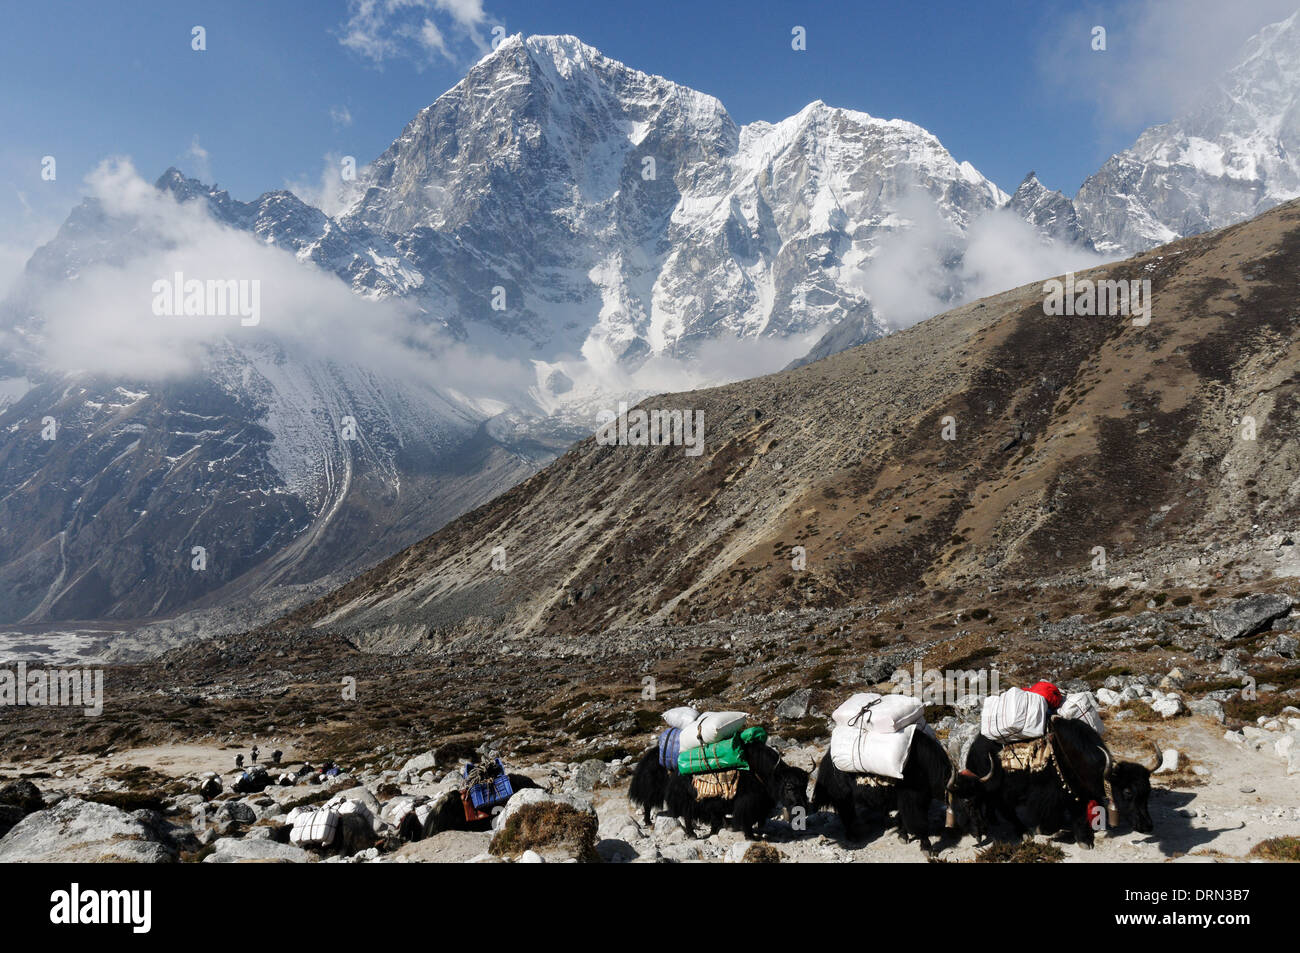 A yak train in the everest region of the himalayas with Taboche peak behind - Stock Image